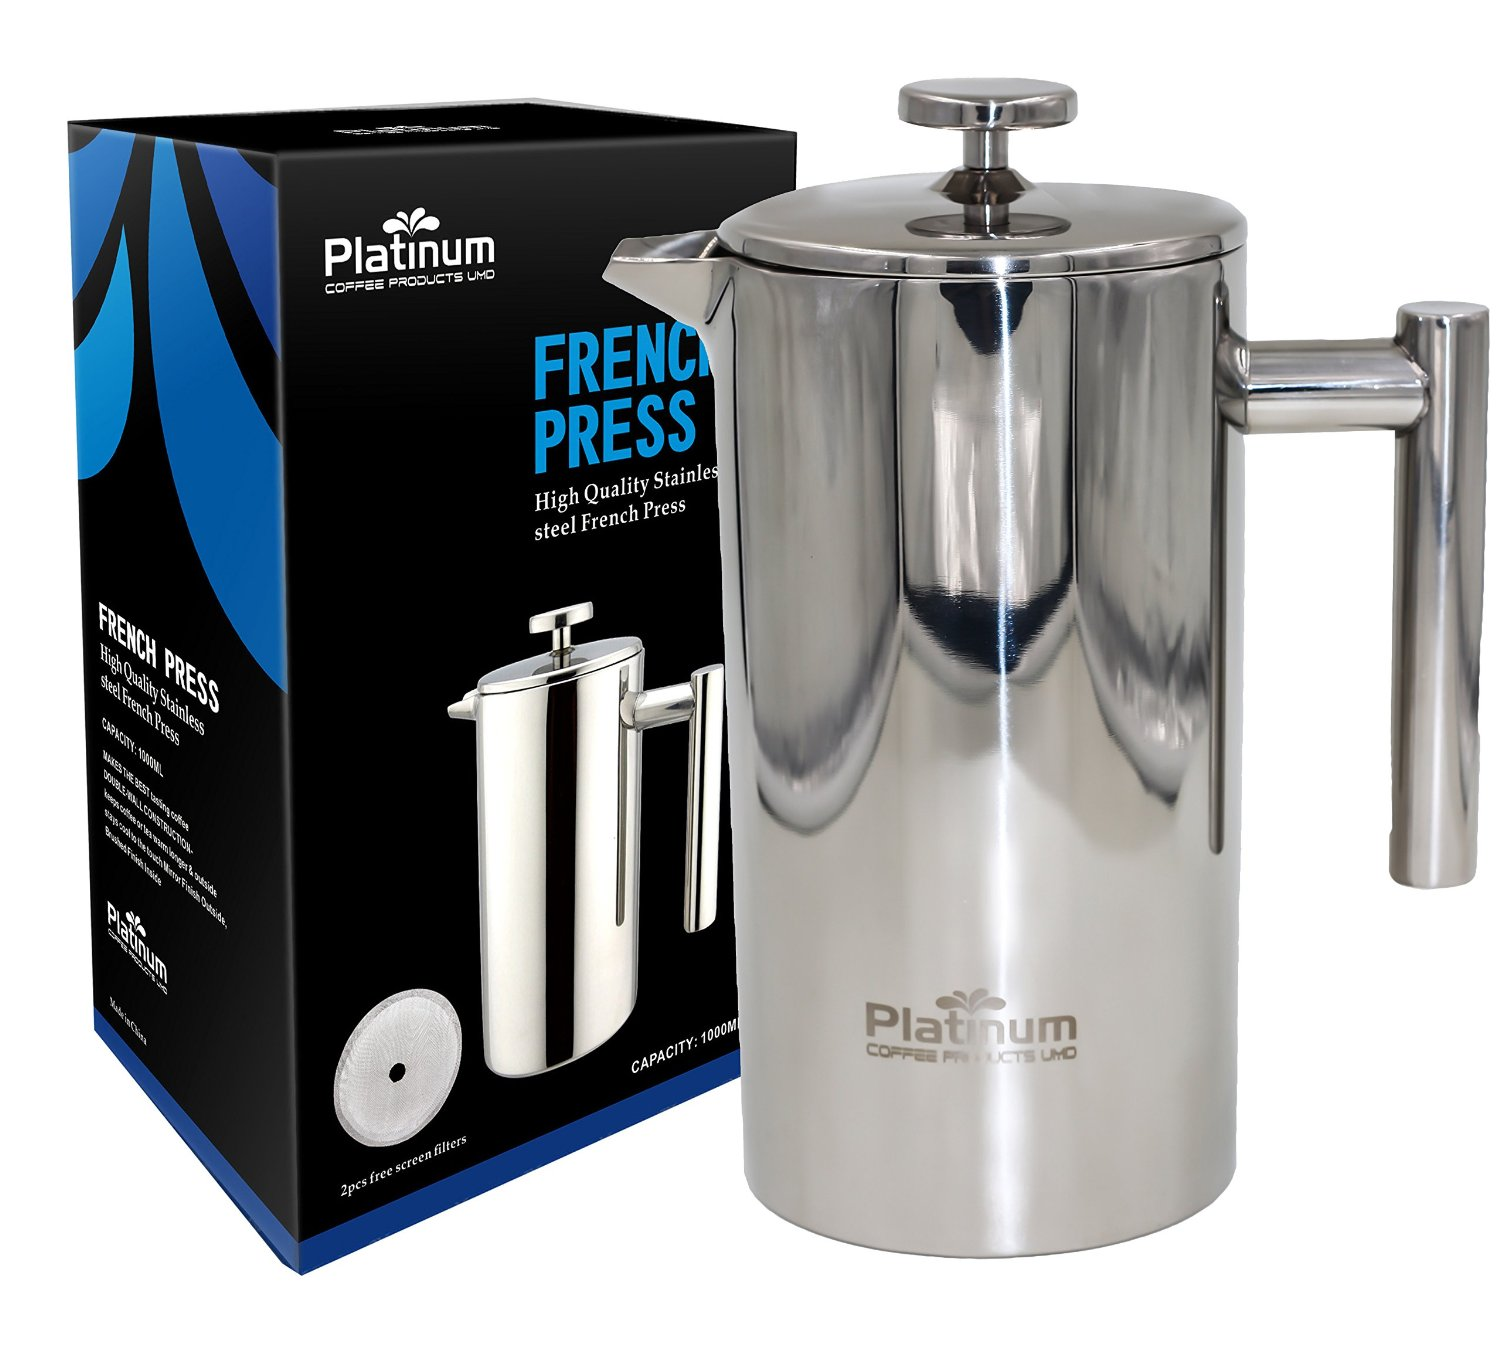 Platinum French Press Coffee Stainless Steel Double Wall 1000ml / 34OZ 1 Liter Insulated Double Wall. Makes 8 Cups or Mugs, No Plastic or Glass Coffee Tea Lovers, Fresh Brewed Best tasting #1 Coffee !